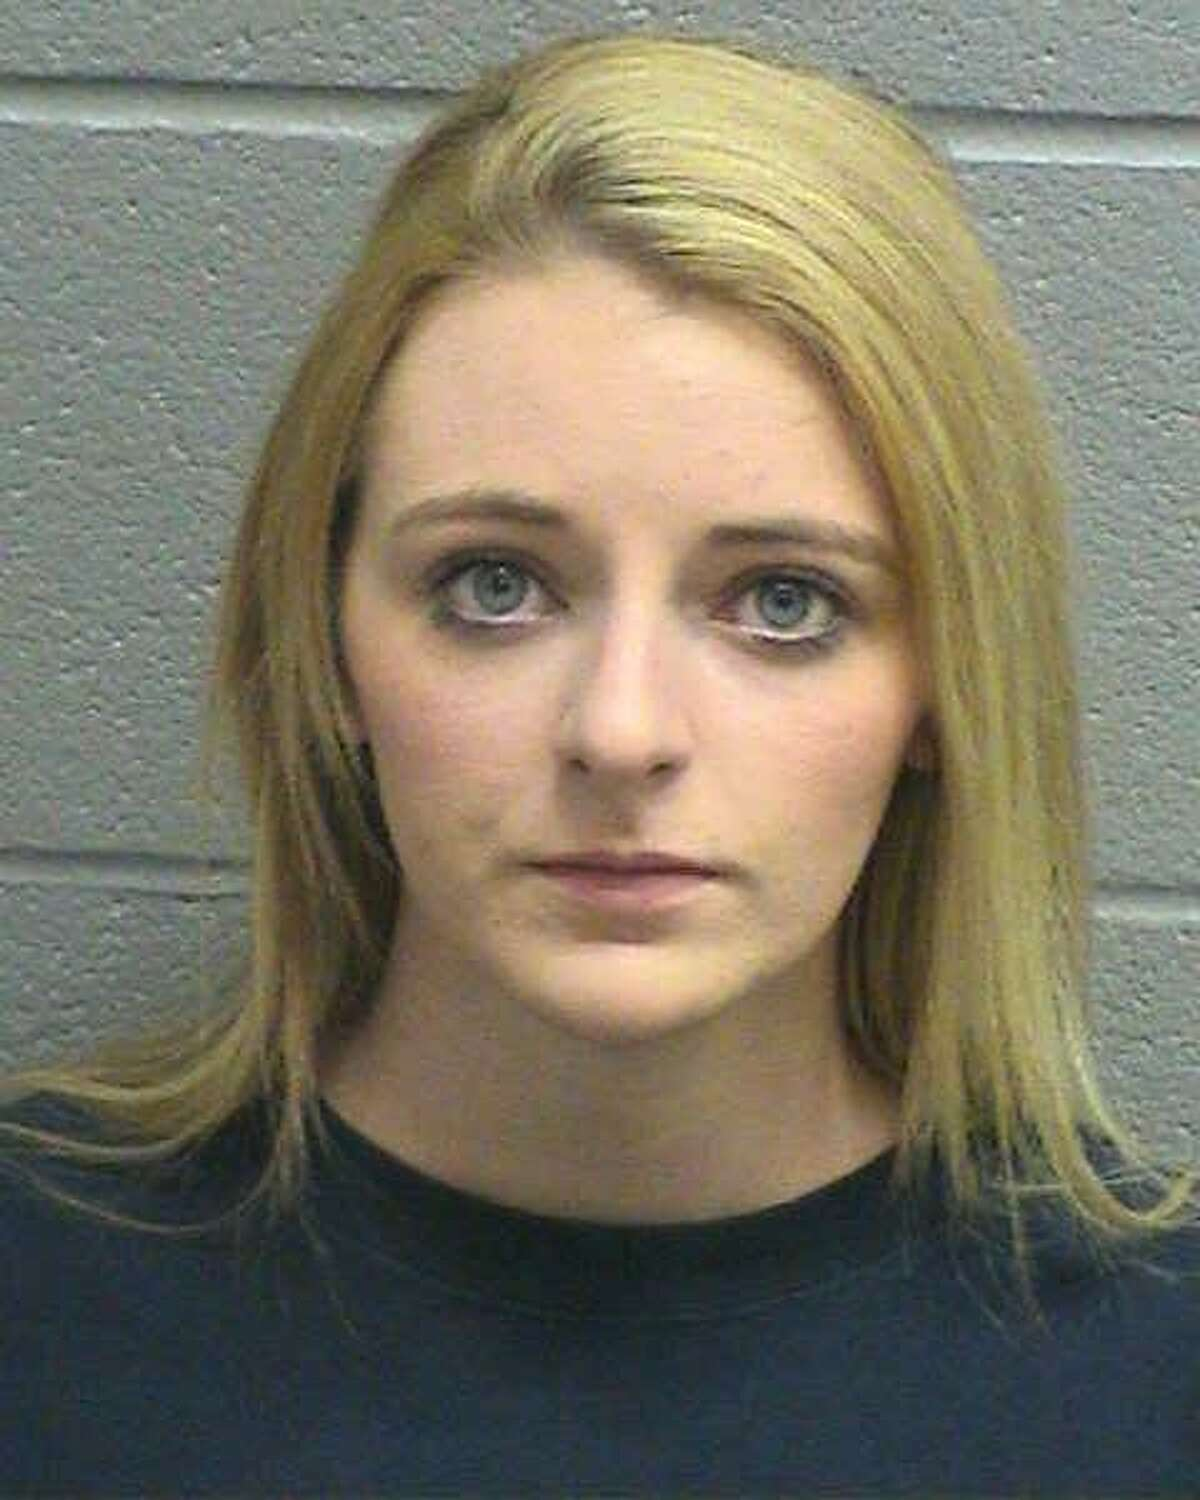 Kayleigh Nicole Paulk, 17, of Midland, was charged April 8 with a third-degree felony charge of failure to stop and render aid in an accident involving serious bodily injury.Paulk veered her vehicle to strike a man on a motorcycle. Texting while driving is being considered a possible factor in the crash, according to MRT records.If convicted, Paulk faces up to 10 years in prison.